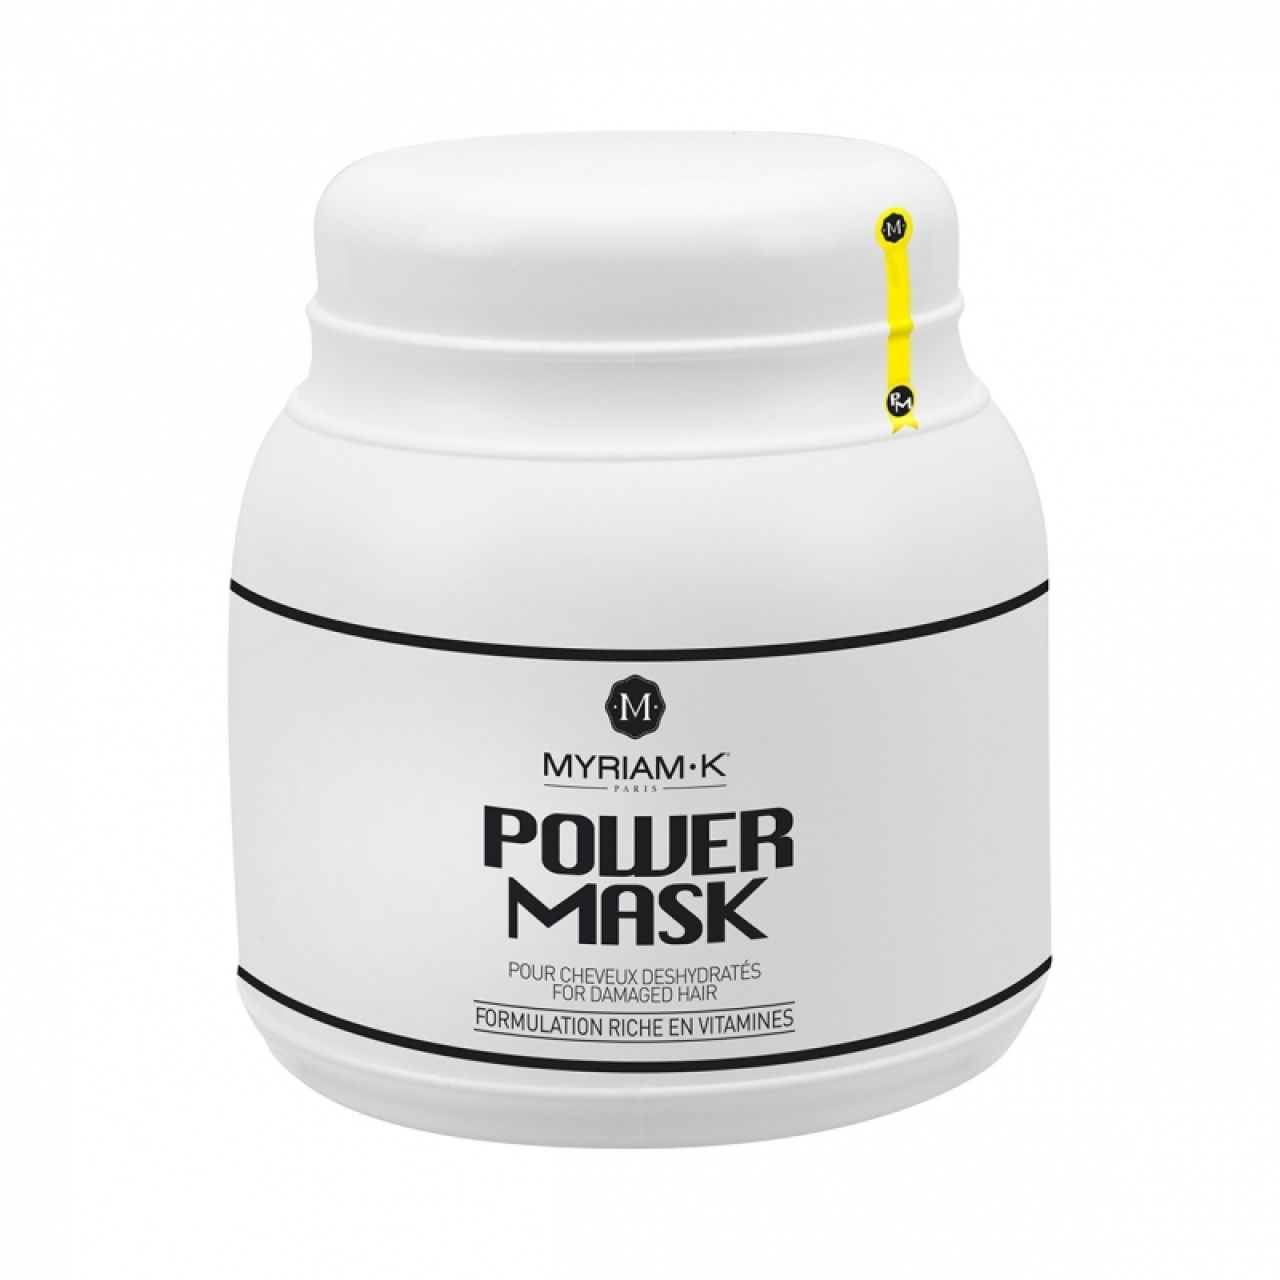 NADYA SIGNATURE - power masque myriam k